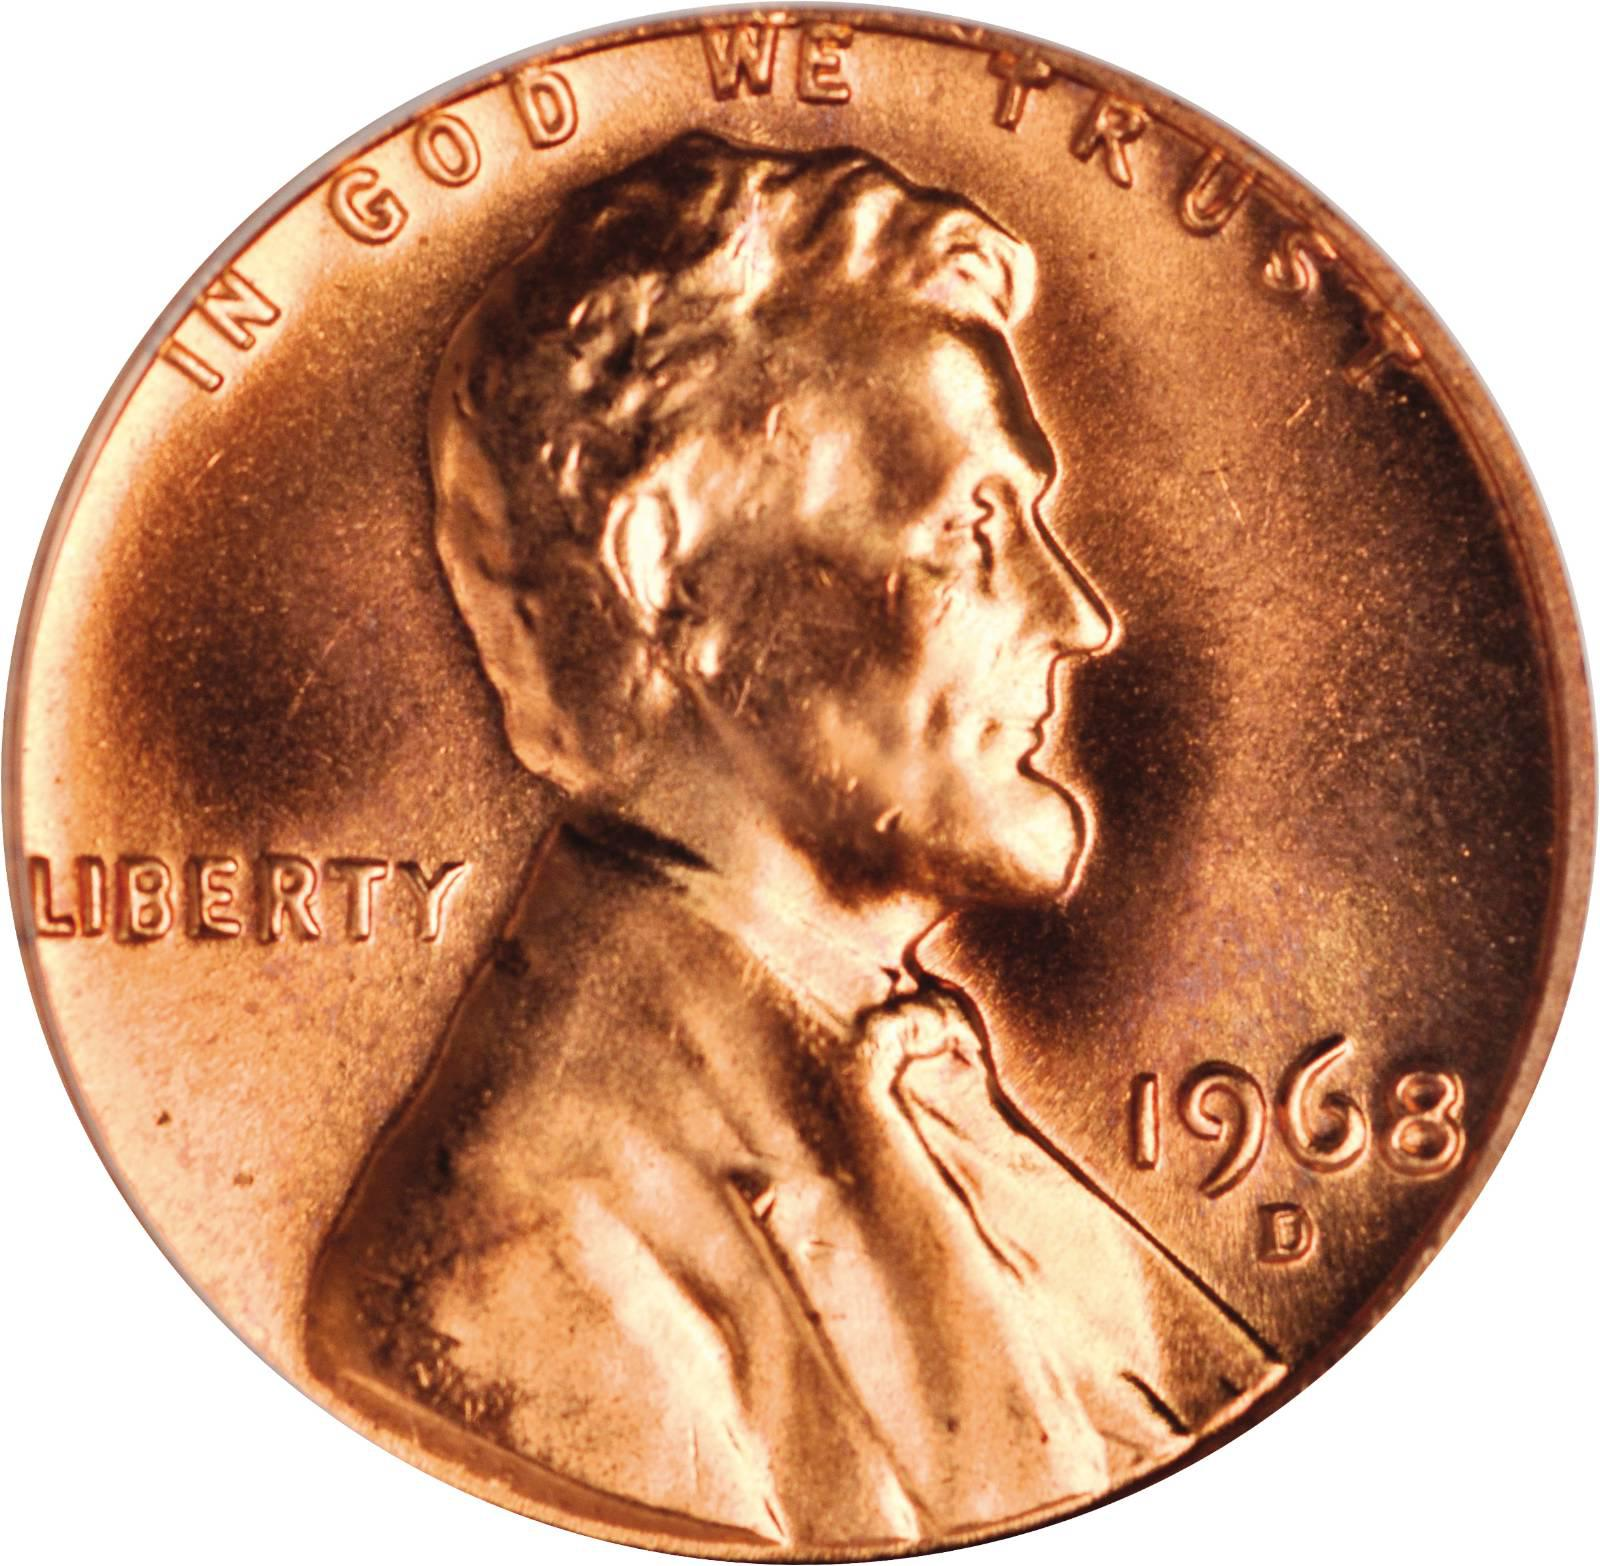 Value Of 1968 D Lincoln Memorial Cent